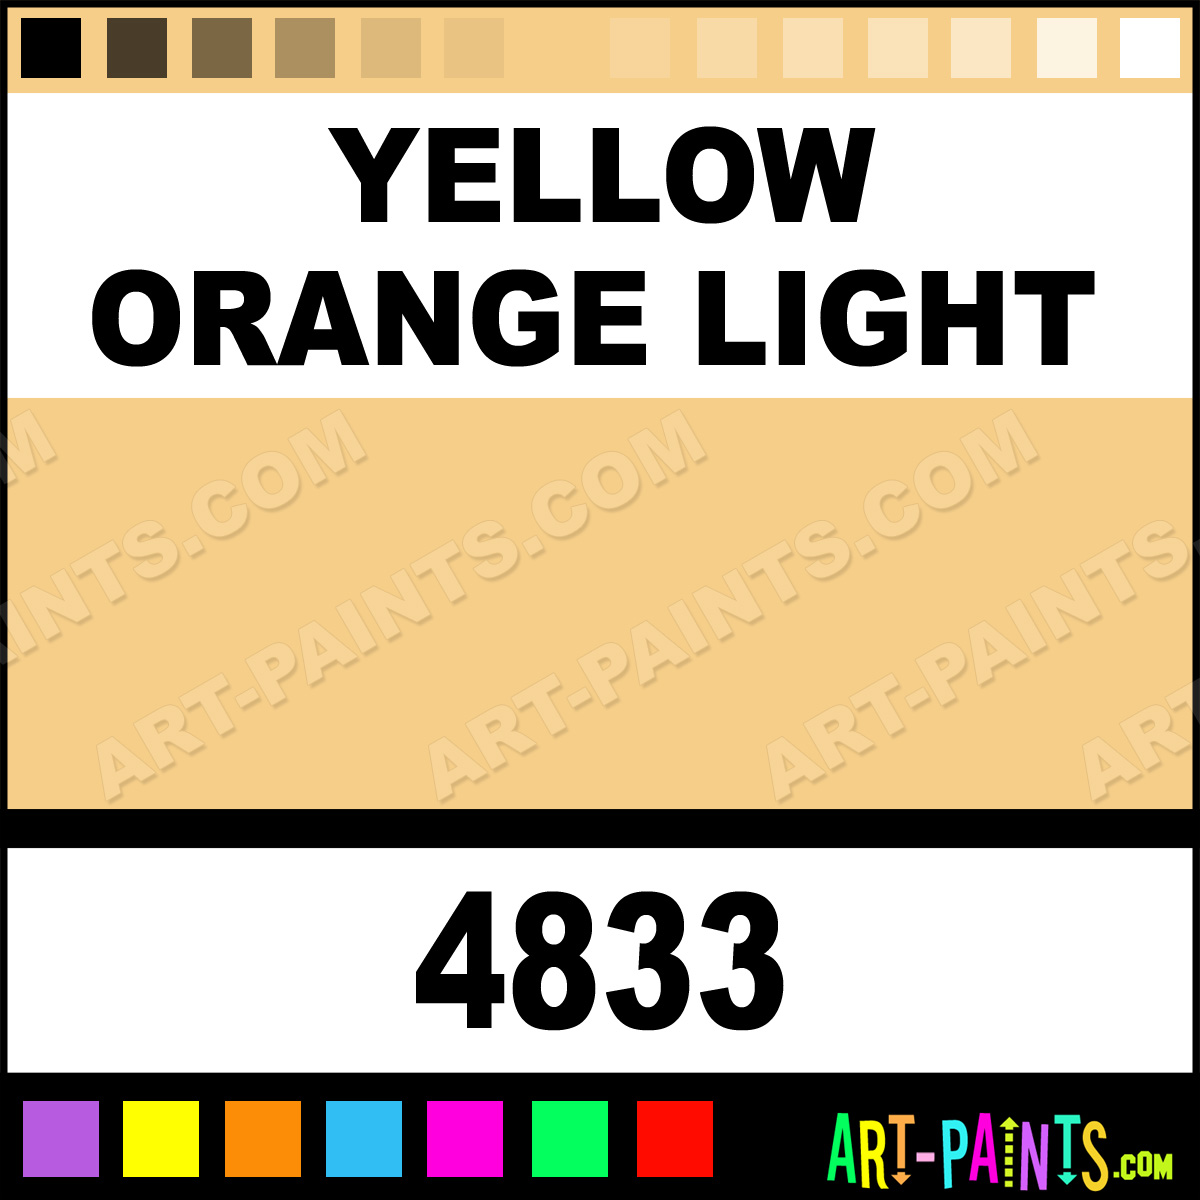 Light Orange Paint Jump To Other Hues View Other Hues